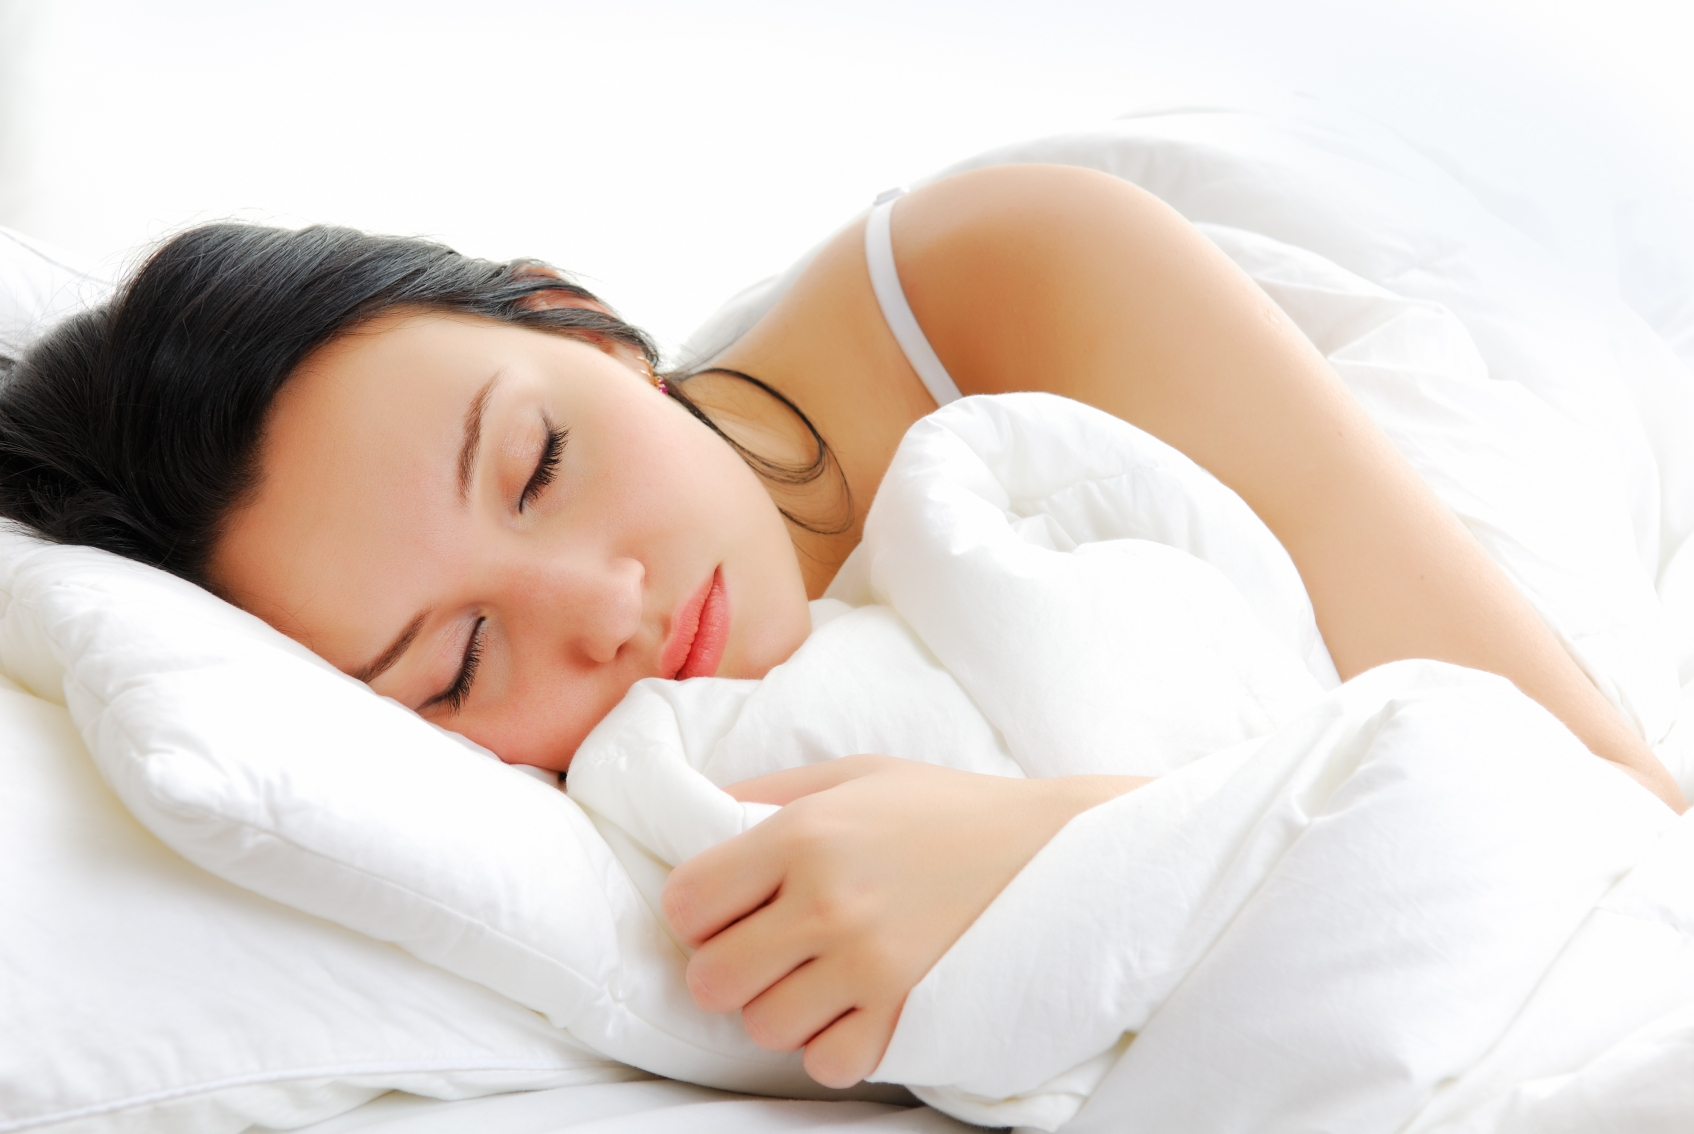 Proper Sleep Is Important For Health